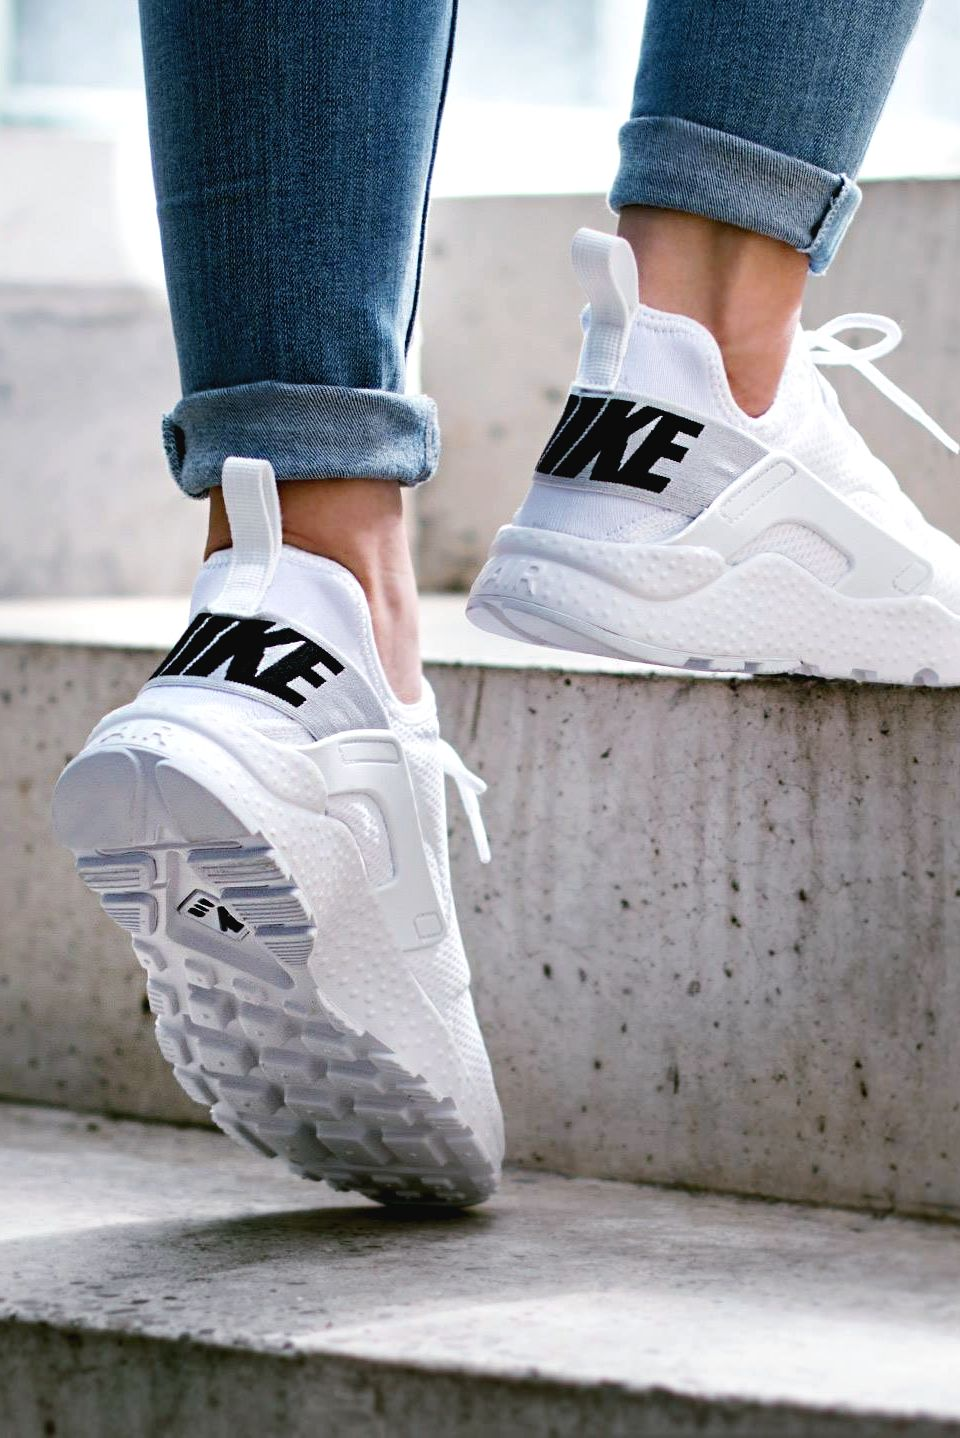 af73269a80a95 Nike Wmns Air Huarache Run Ultra  White Black  (via Kicks-daily.com)